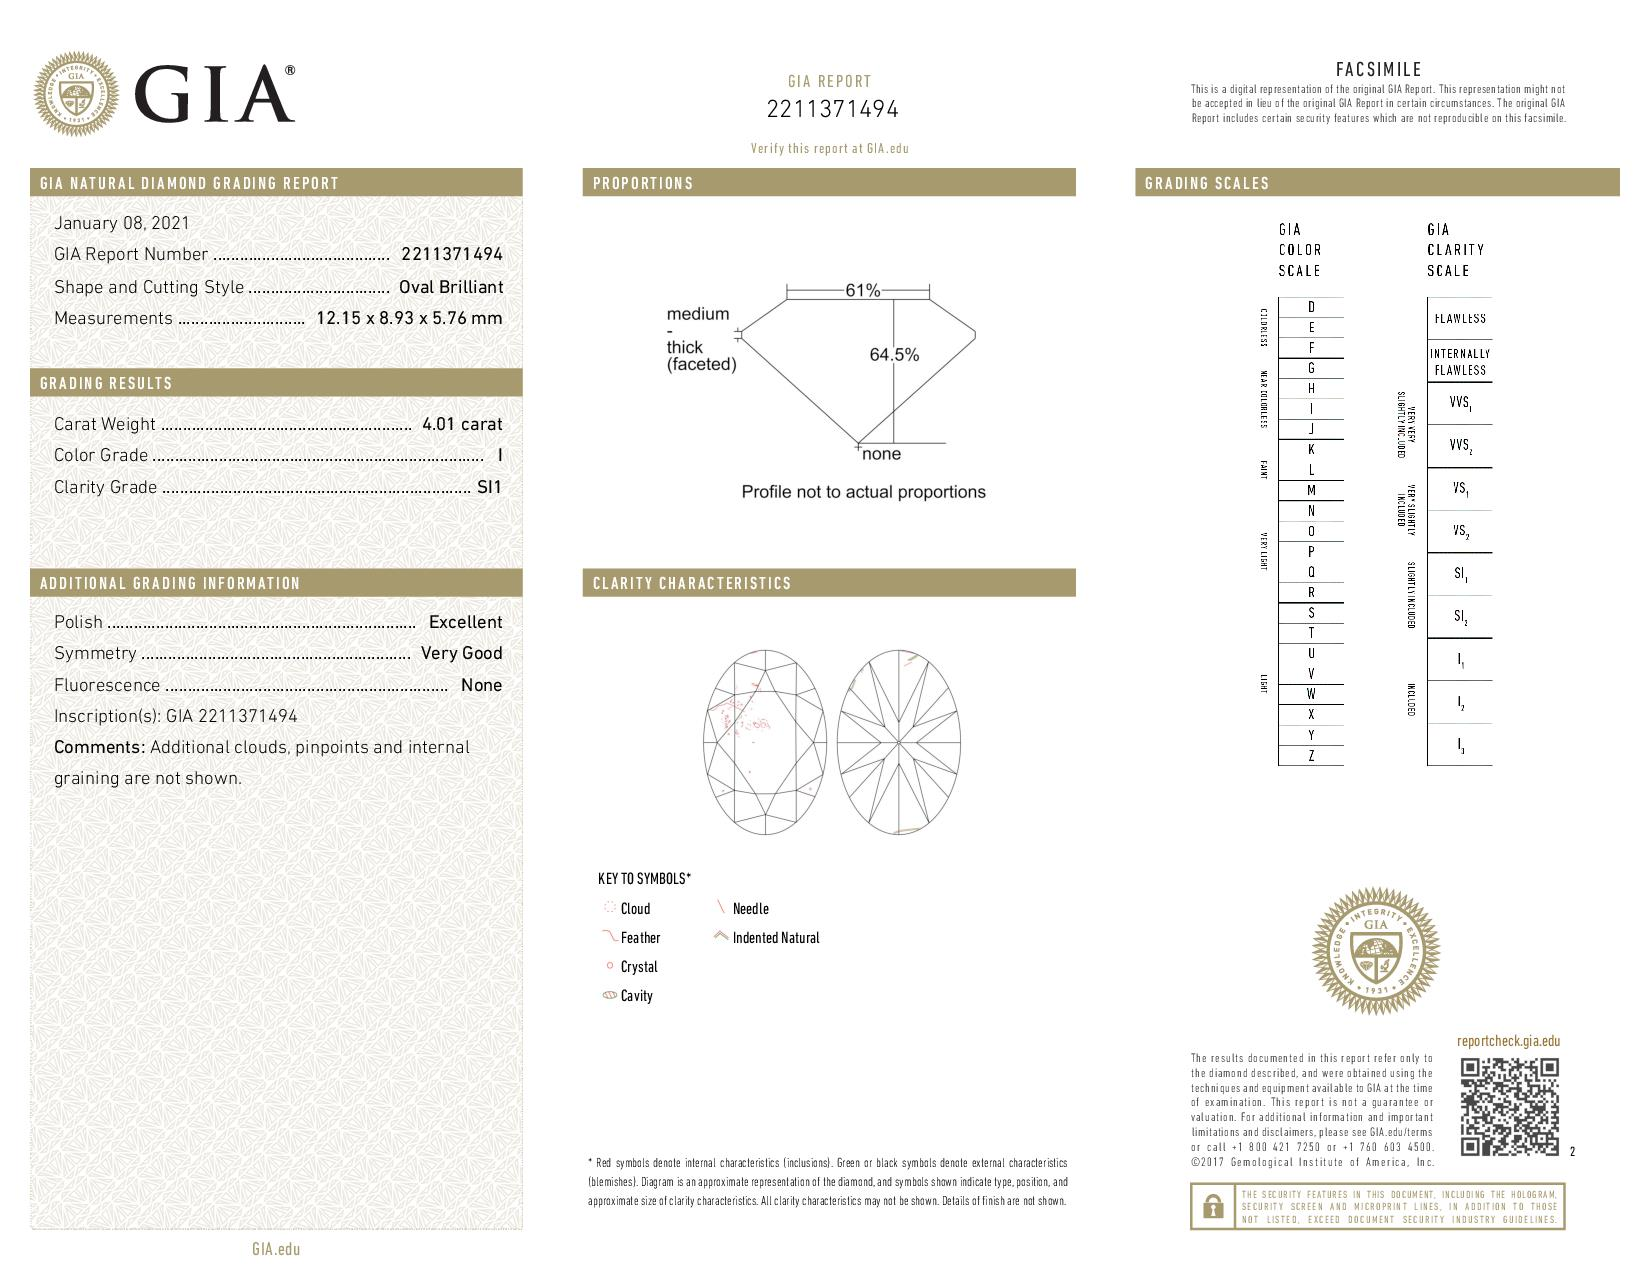 This is a 4.01 carat oval shape, I color, SI1 clarity natural diamond accompanied by a GIA grading report.